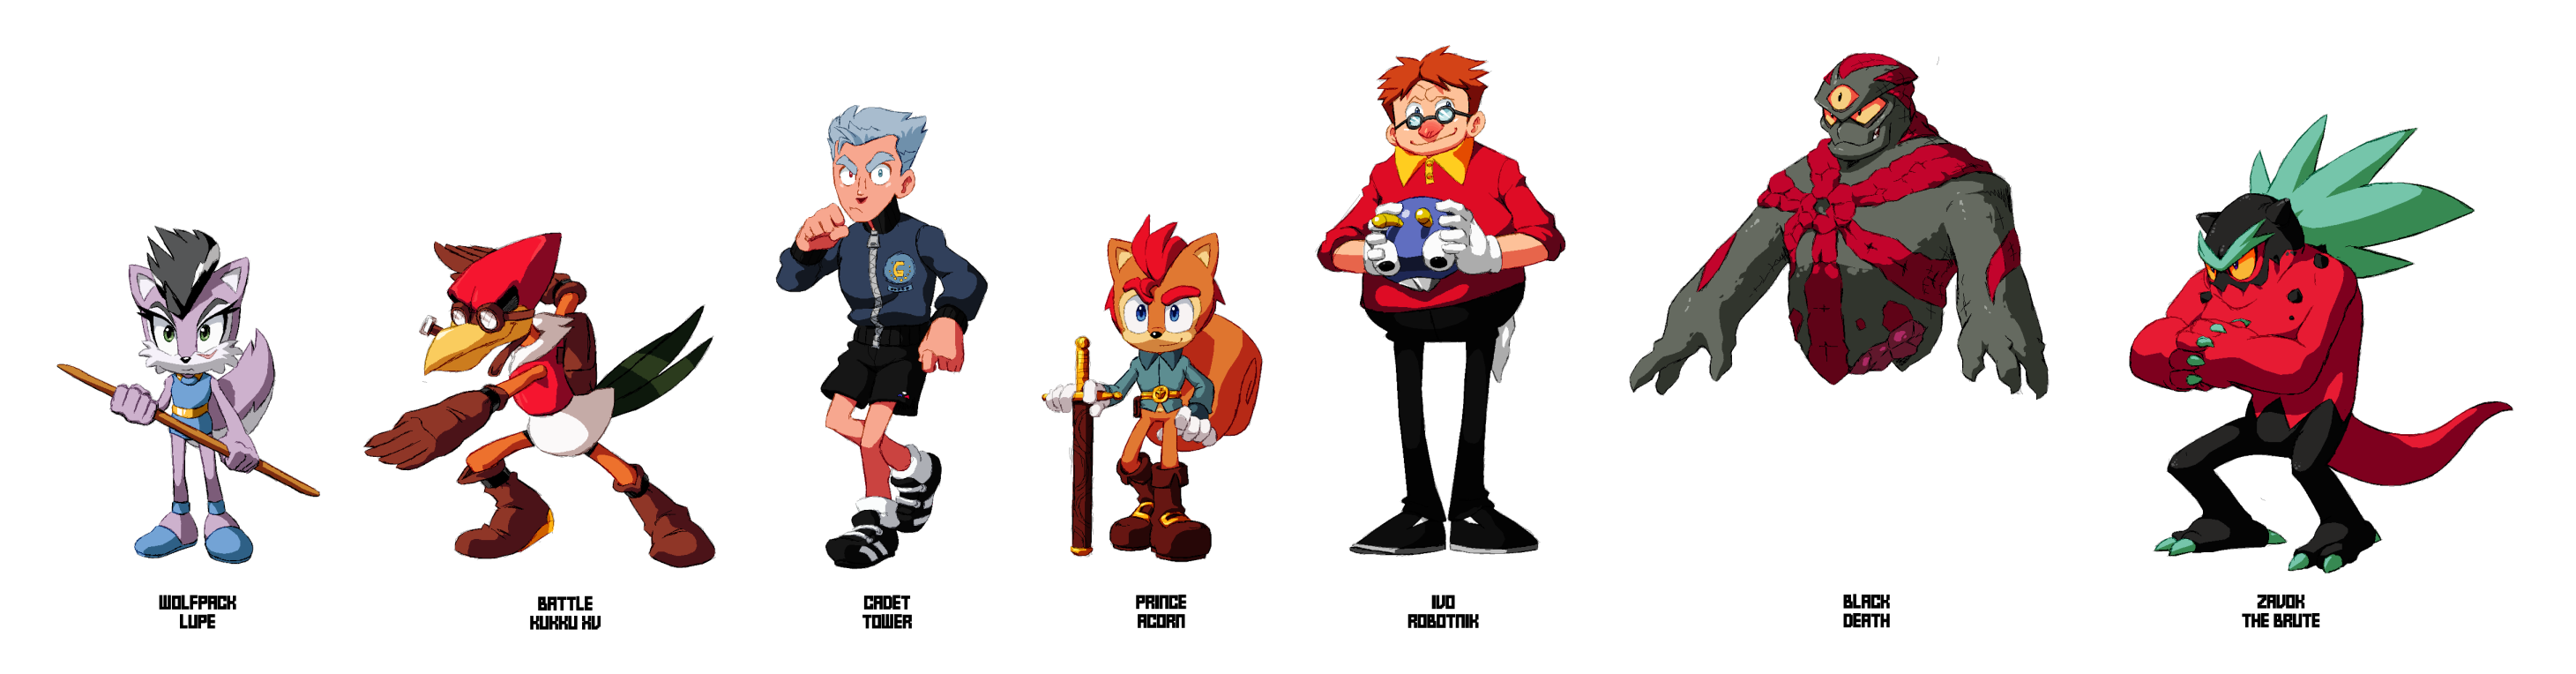 Young Leaders Sonic The Hedgehog Know Your Meme